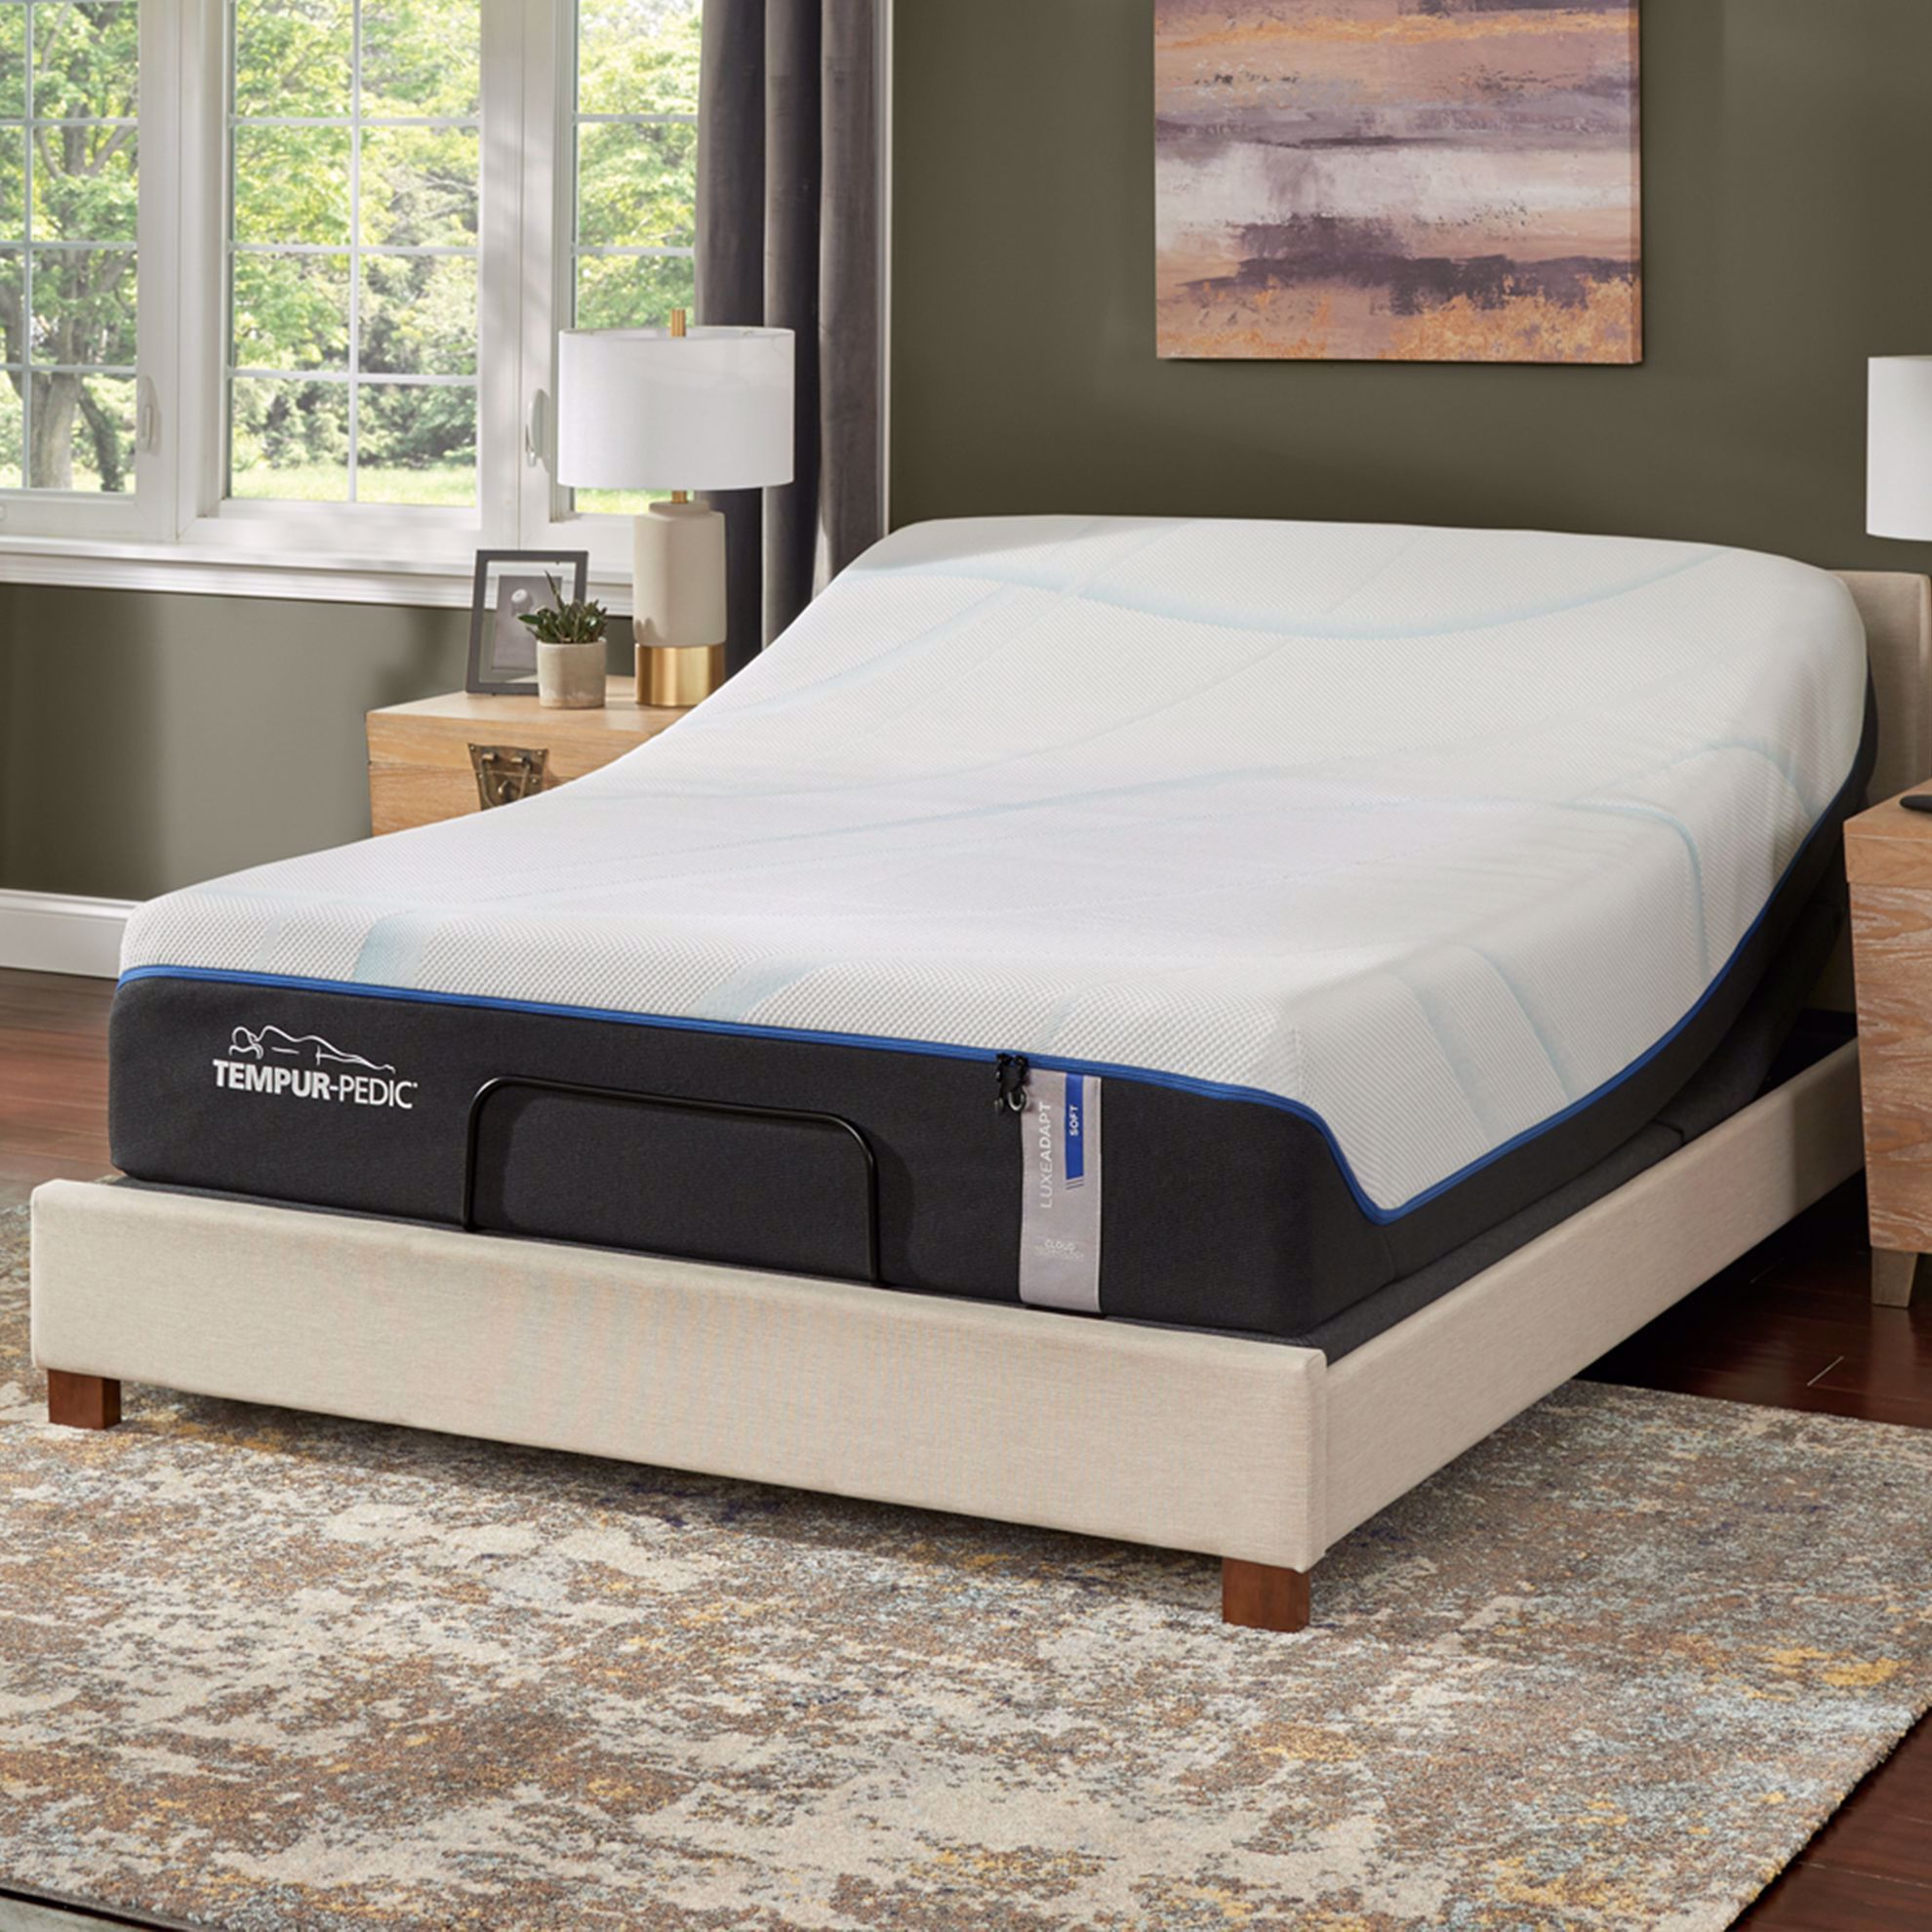 Picture of Tempur-Pedic Ergo Extend 2 King with Sleep Tracker